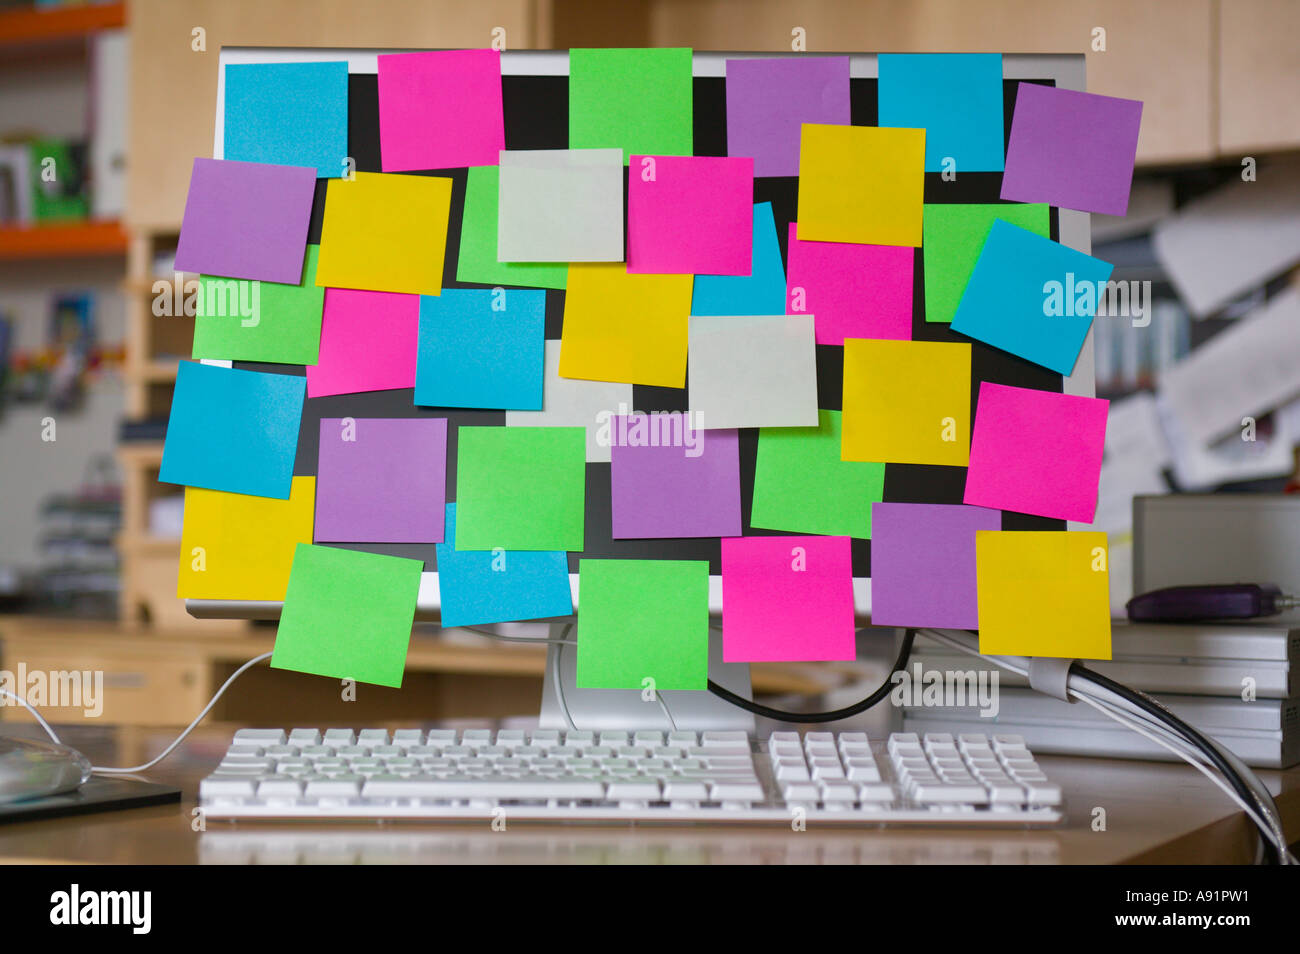 post it notes on computer monitor stock photo royalty free image 6984208 alamy. Black Bedroom Furniture Sets. Home Design Ideas